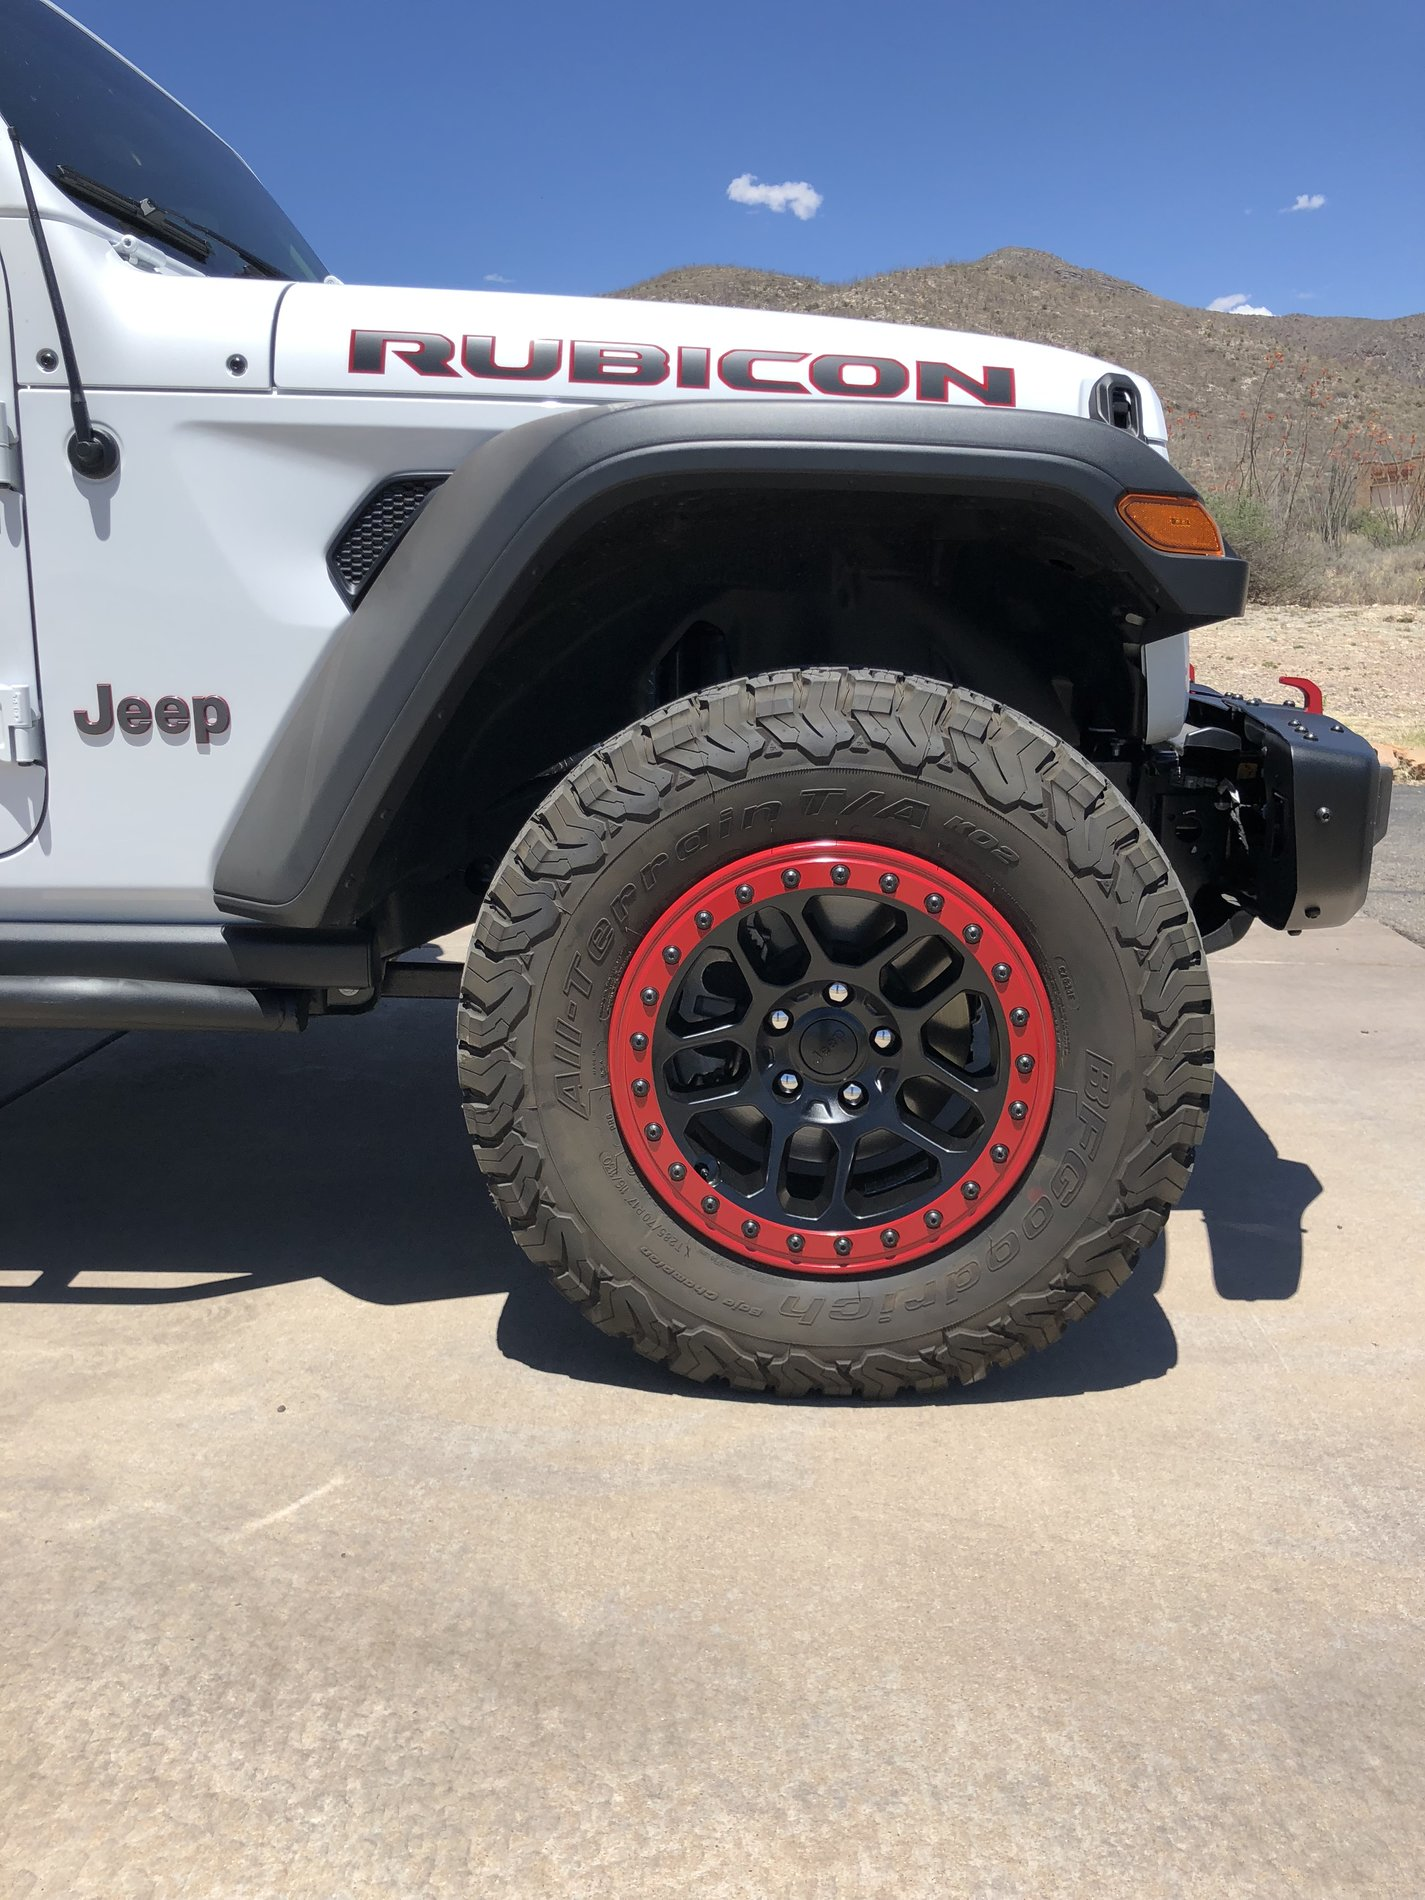 Best Tires For Jeep Wrangler >> New Mopar Beadlocks for our JLU | 2018+ Jeep Wrangler ...